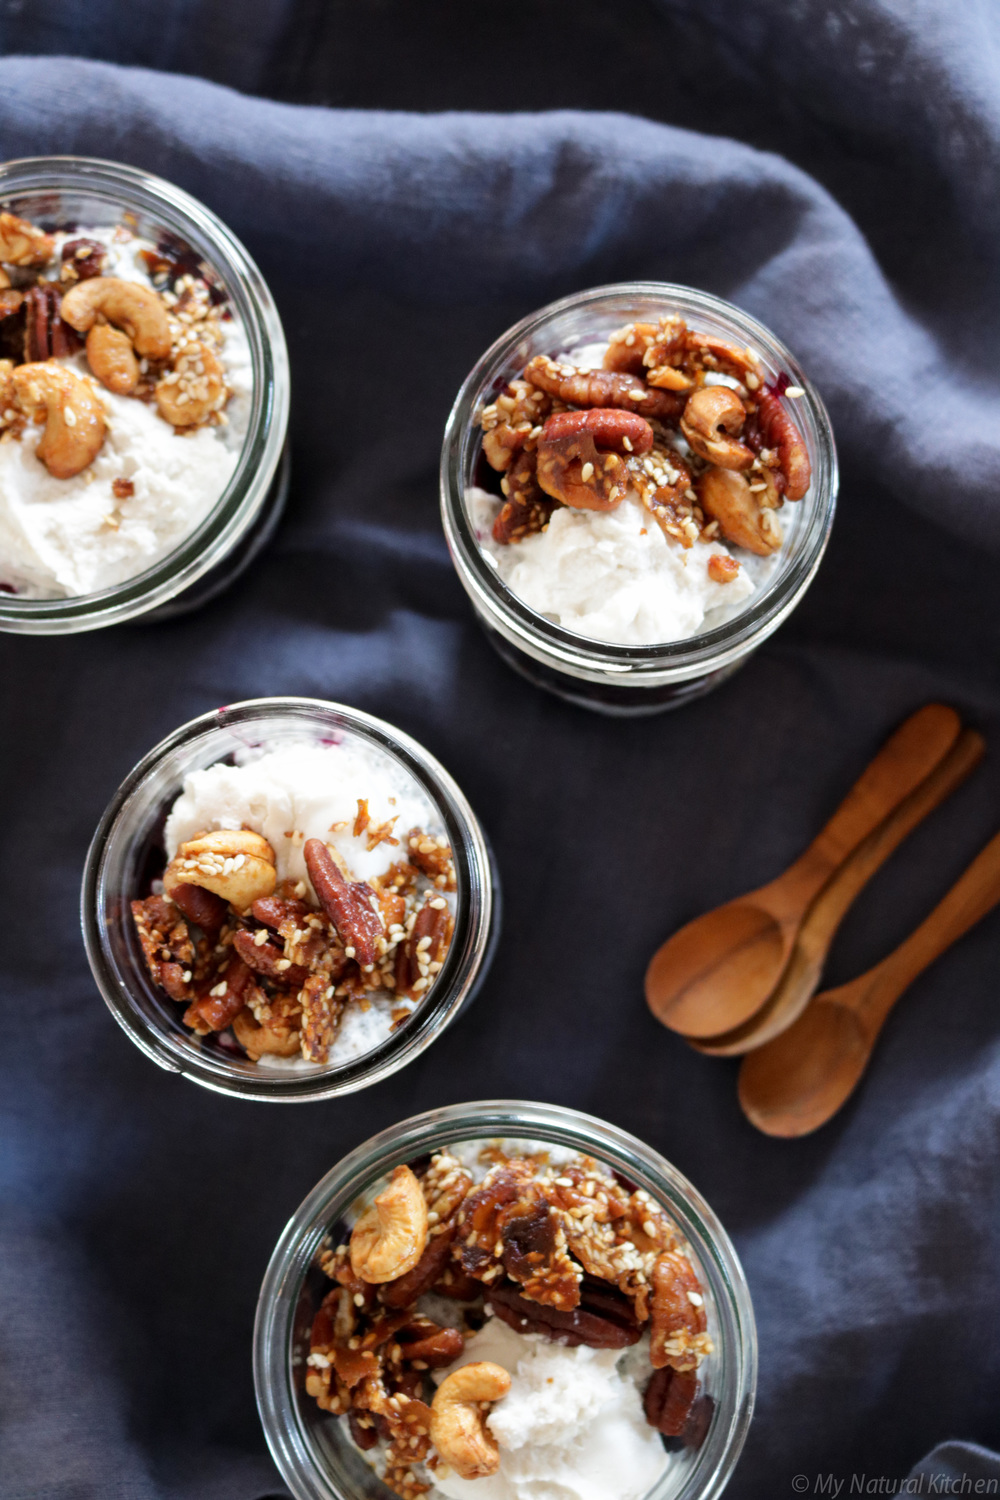 blueberry chia parfaits with crunchy pecan clusters (gluten free, vegan, paleo) by my natural kitchen